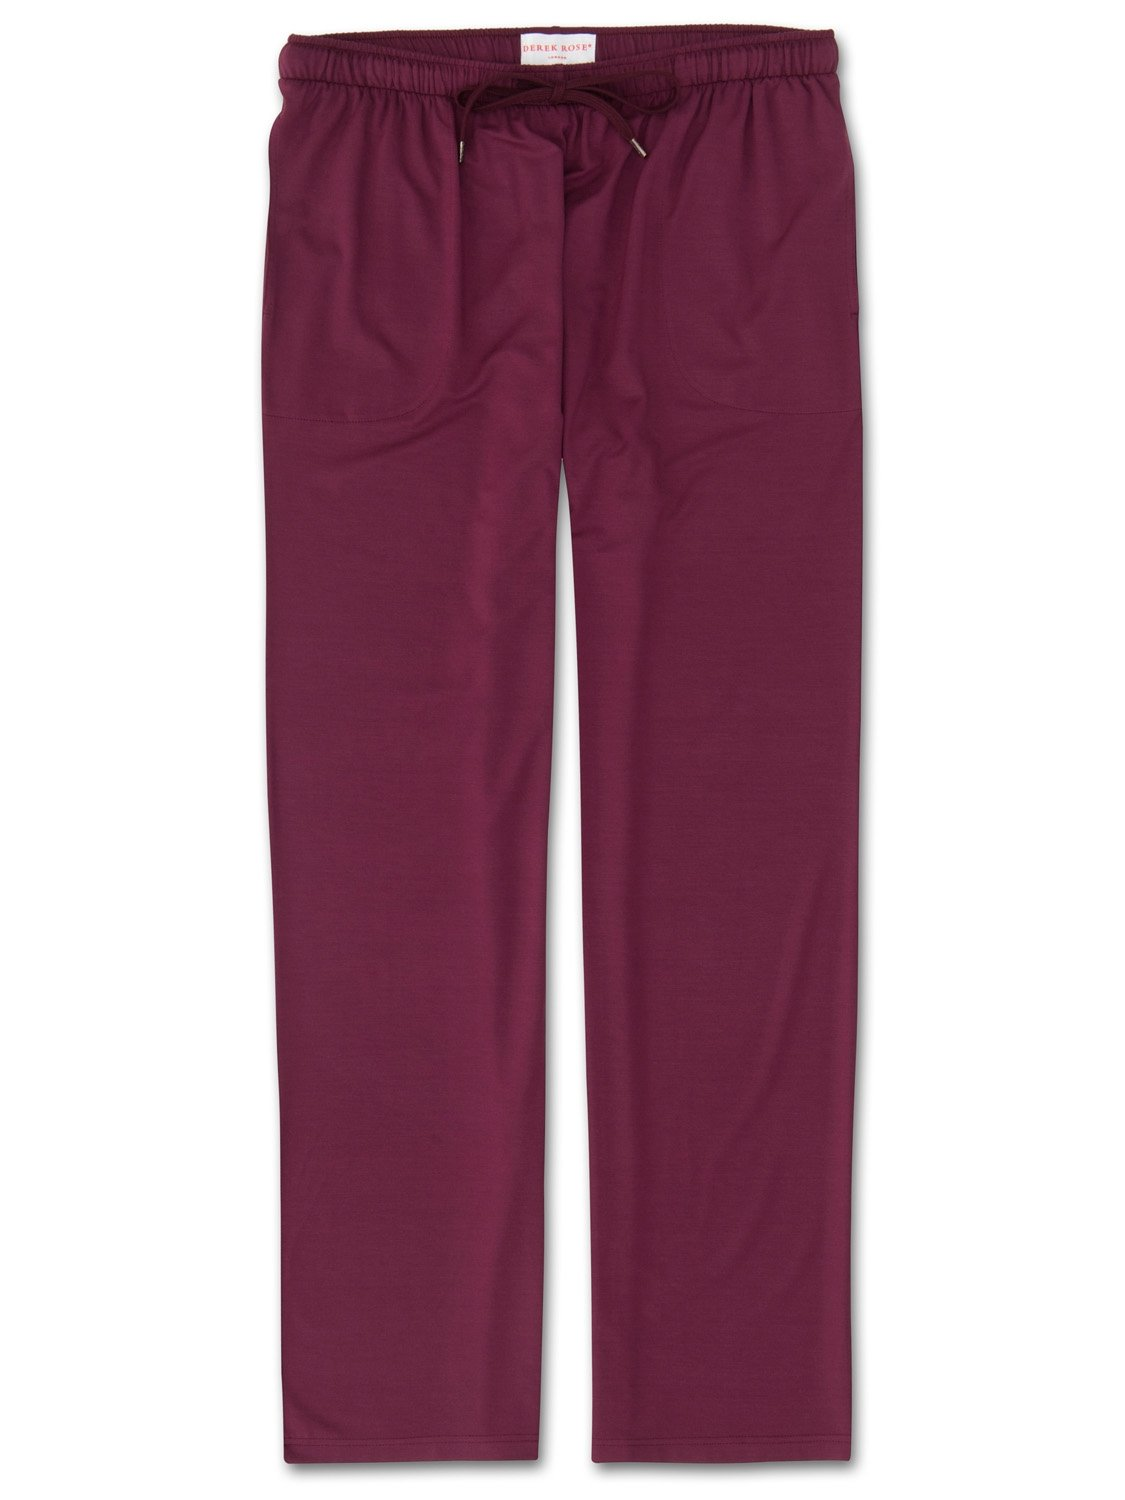 Men's Jersey Trousers Basel 5 Micro Modal Stretch Burgundy